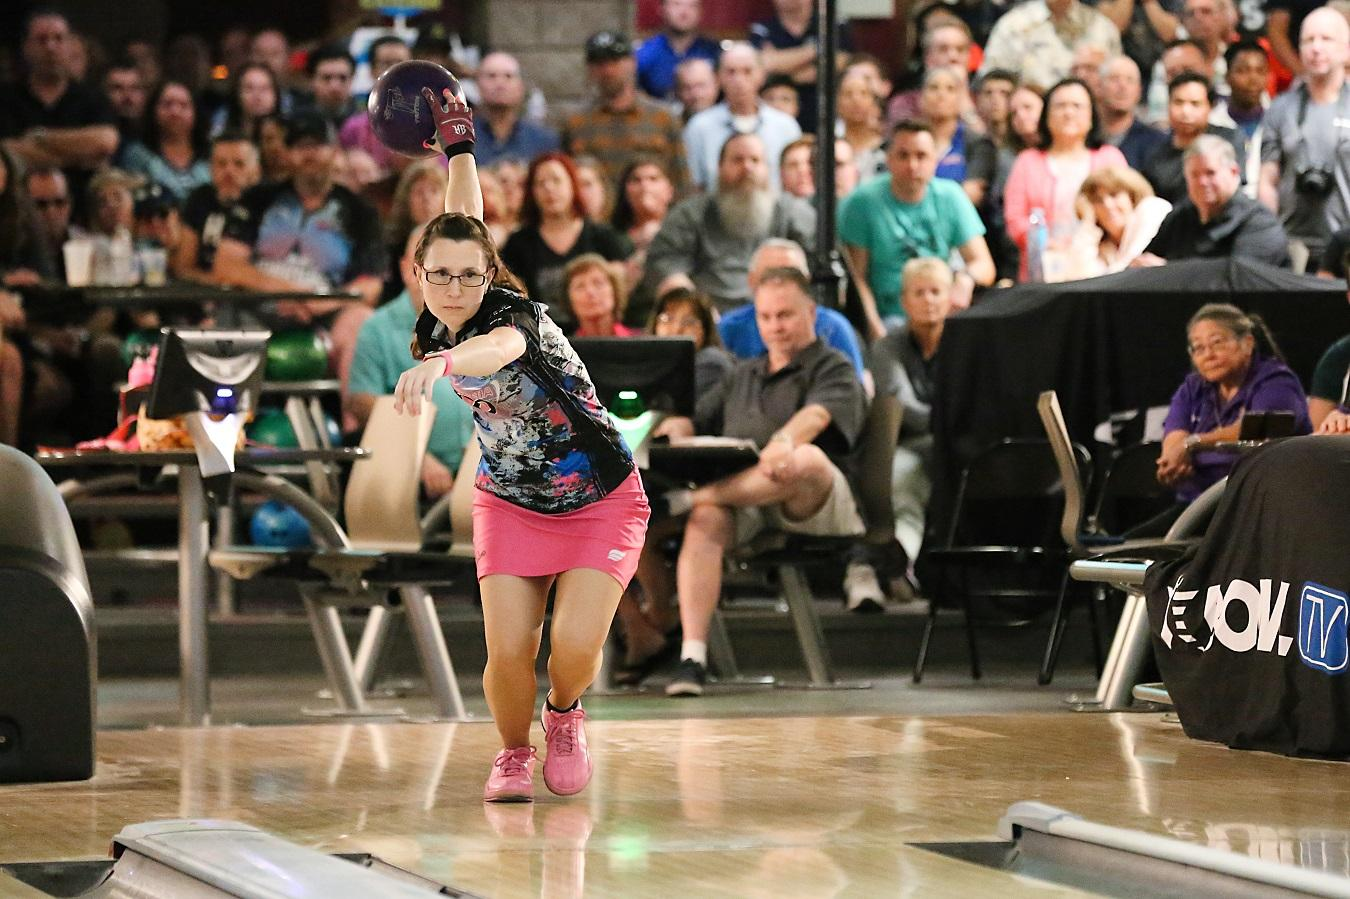 Team USA Selects 2019 World Bowling Women's Championships Roster